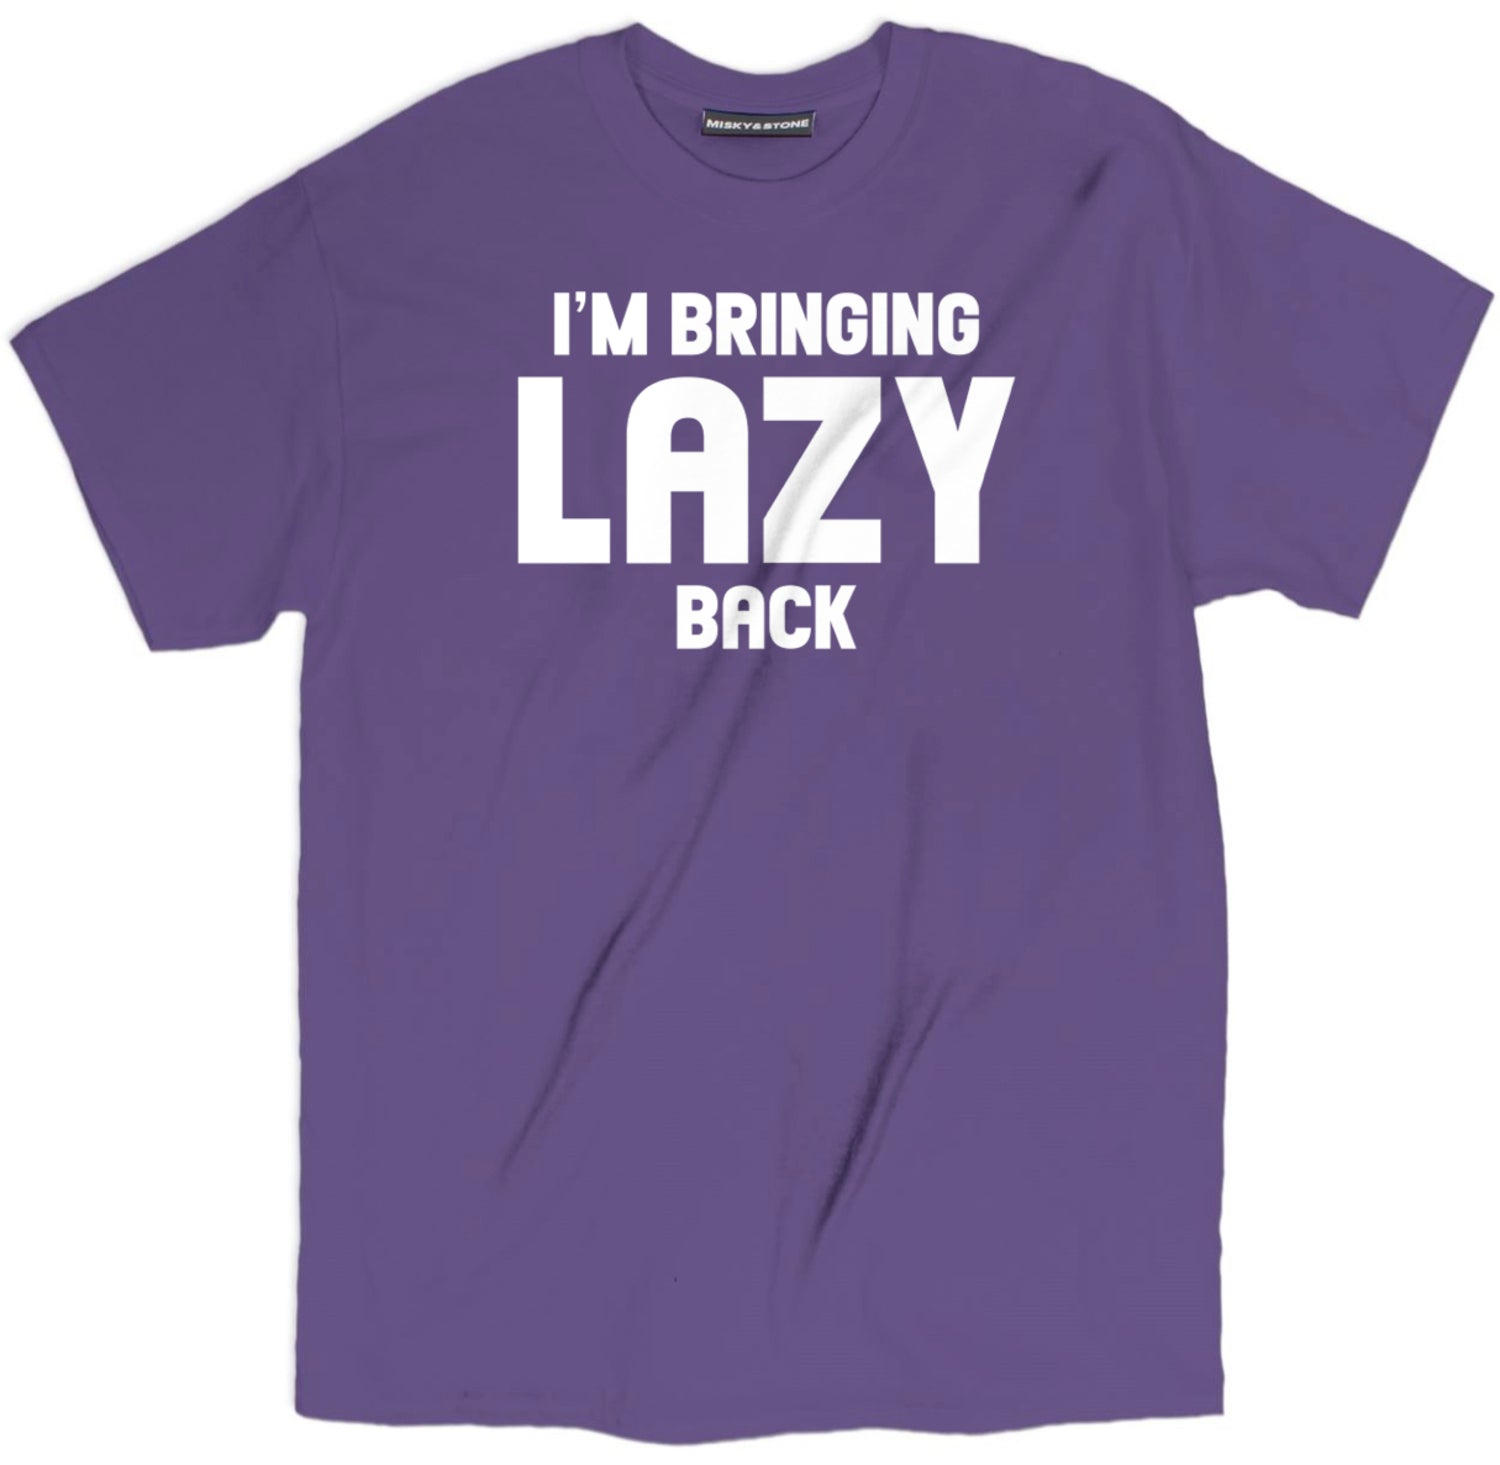 lazy t shirt, funny shirts with sayings, funny t shirt sayings, shirts with sayings, funny t shirt quotes, t shirt quotes, tee shirts with sayings, tee shirt quotes, quote tees, hilarious t shirt sayings, funny tee shirt sayings, t shirts with sayings on them,